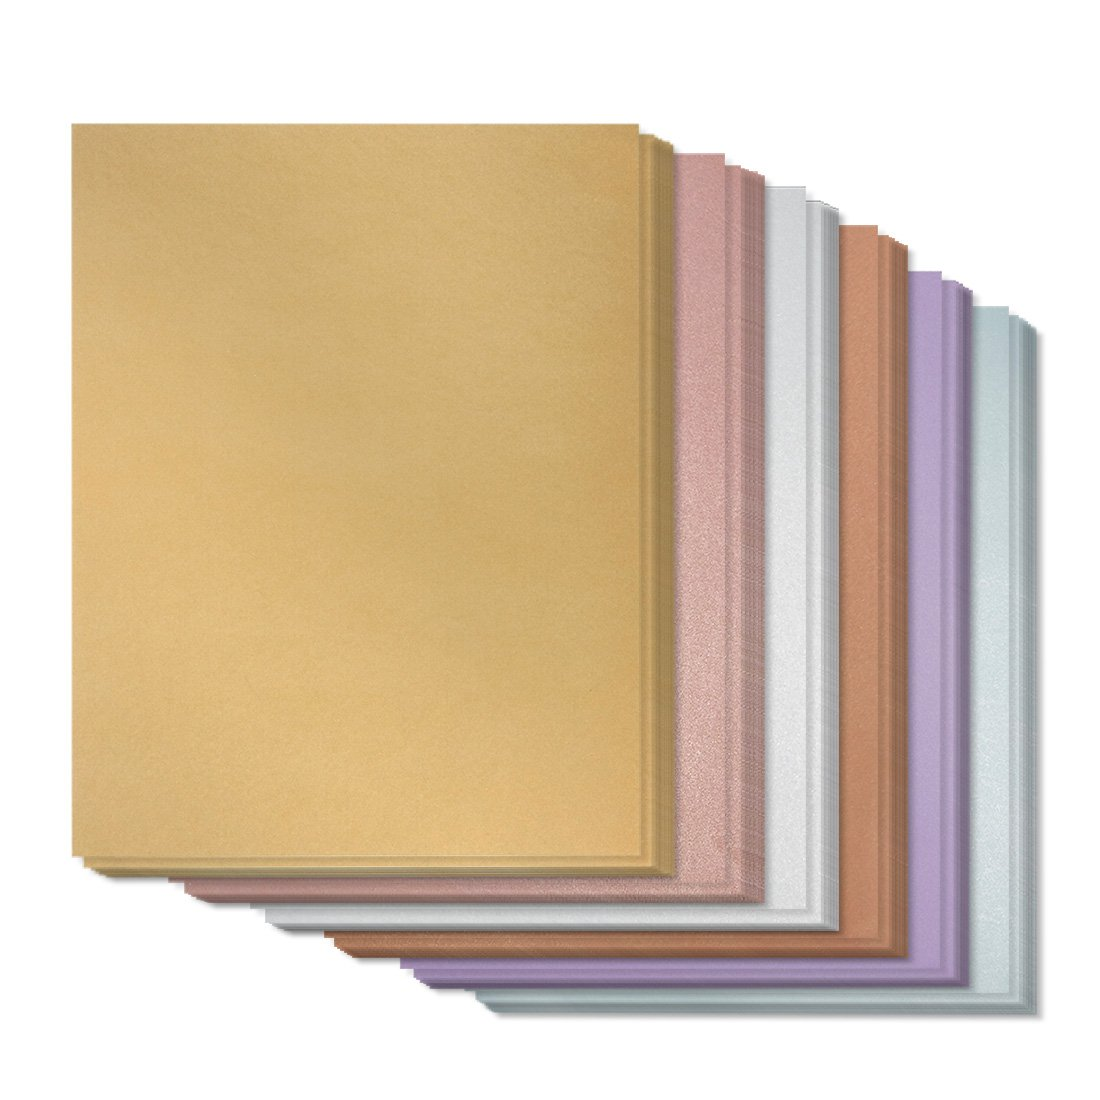 Best Paper Greetings 96-Pack Assorted Colored Paper, 6 Colors, 8.5 x 11 Inches by Best Paper Greetings